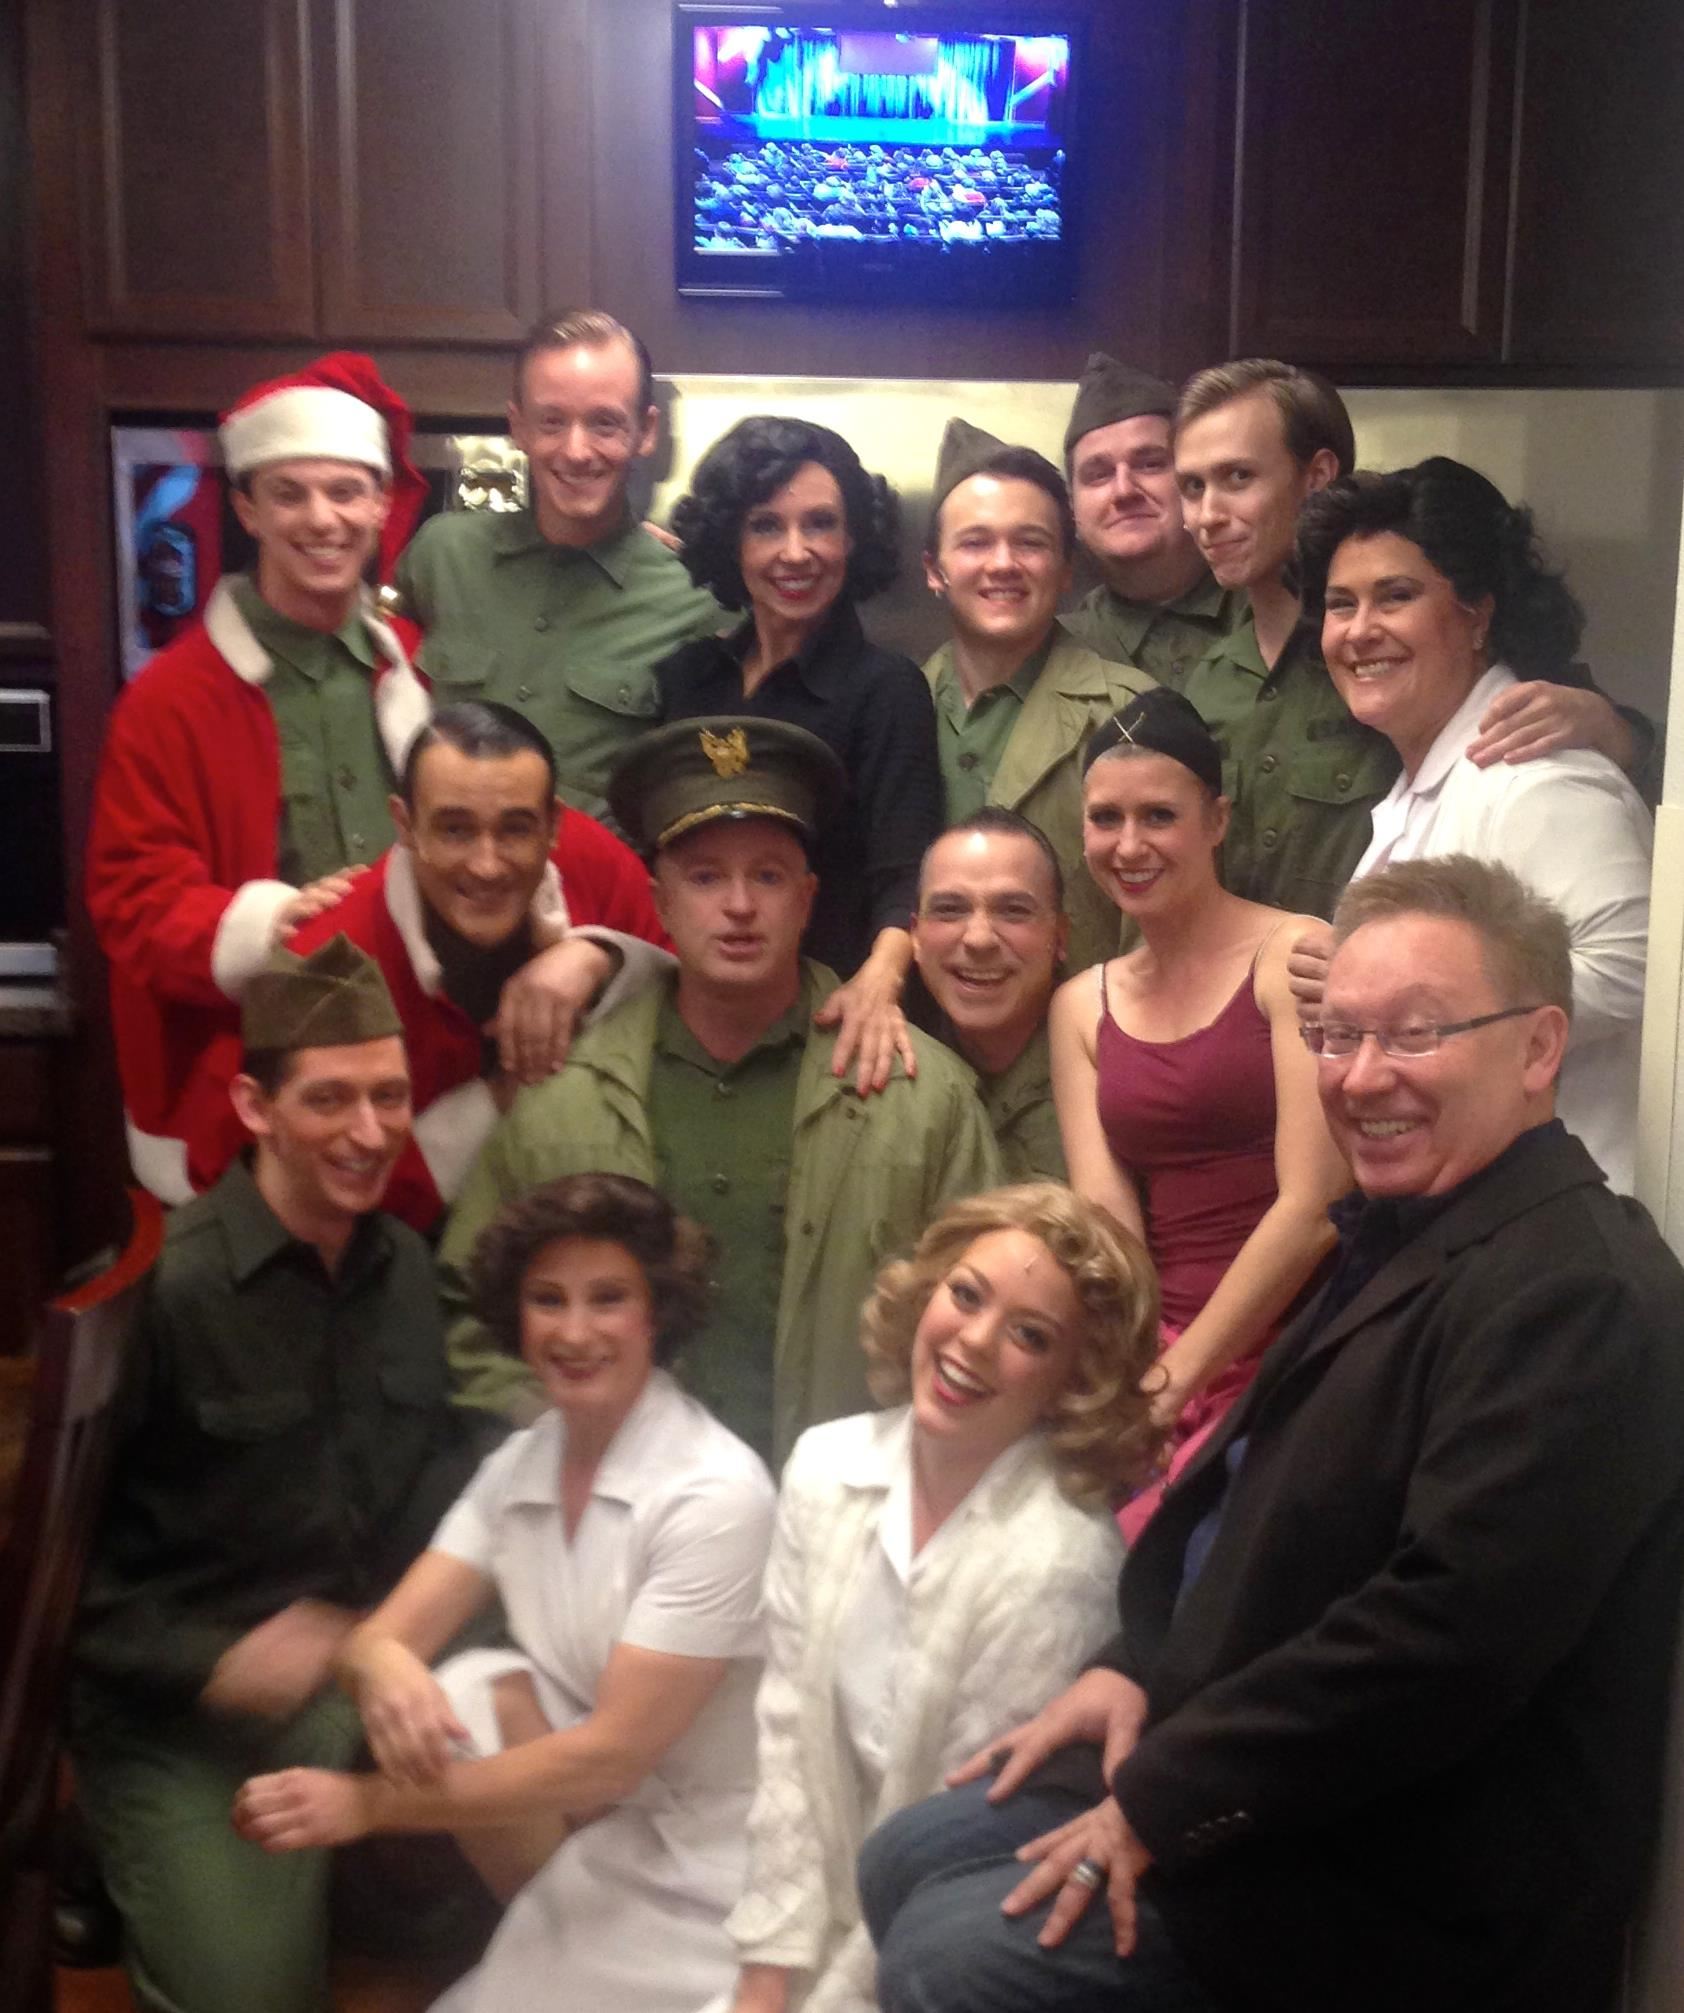 """Backstage at Phoenix Theatre's """"White Christmas."""" Included in the photo are with Peter Marinaro, Jonathan Brian, Joseph Cannon, Darcy Rould- Welch, Sam Hay, Chris Eriksen, Lauren Devine, Terry Gadaire, Kenny Francoeur, Pete Good, Molly Lajoie Plutnicki, Logan Scott Mitchell, Johanna Carlisle and Michael Barnard. (Photo credit unknown)"""